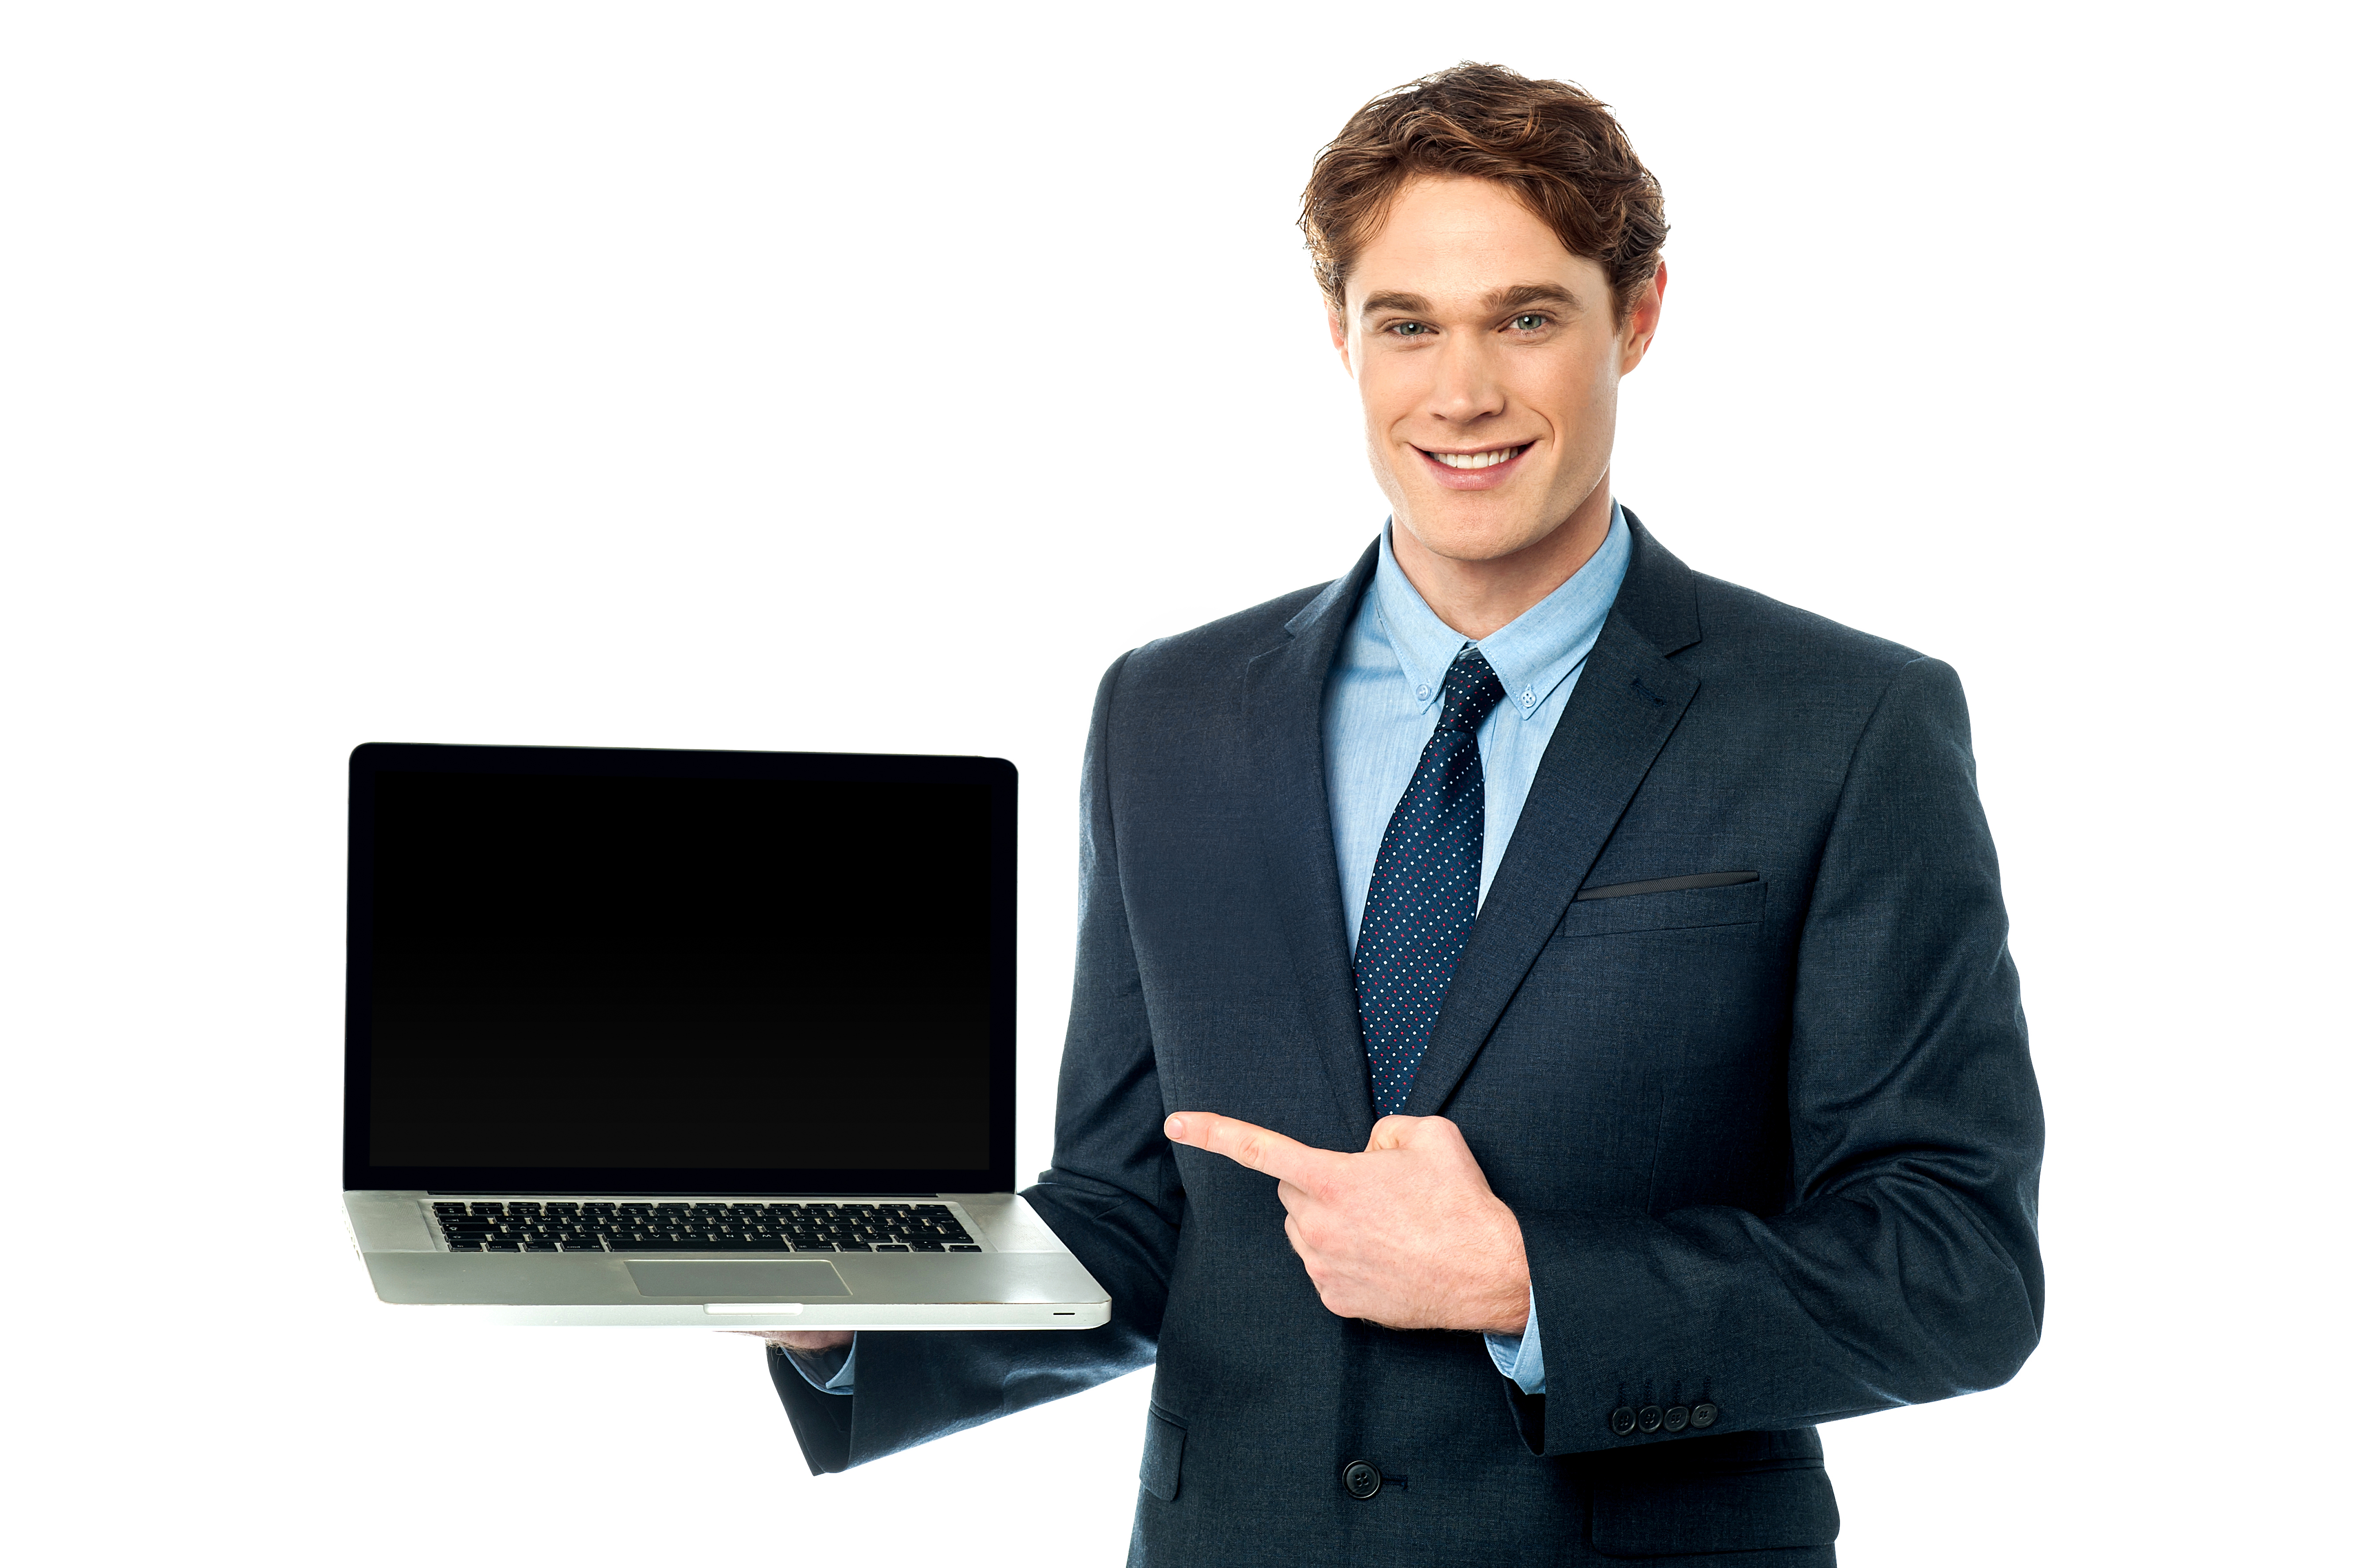 Businessman with laptop png. Male royalty free images